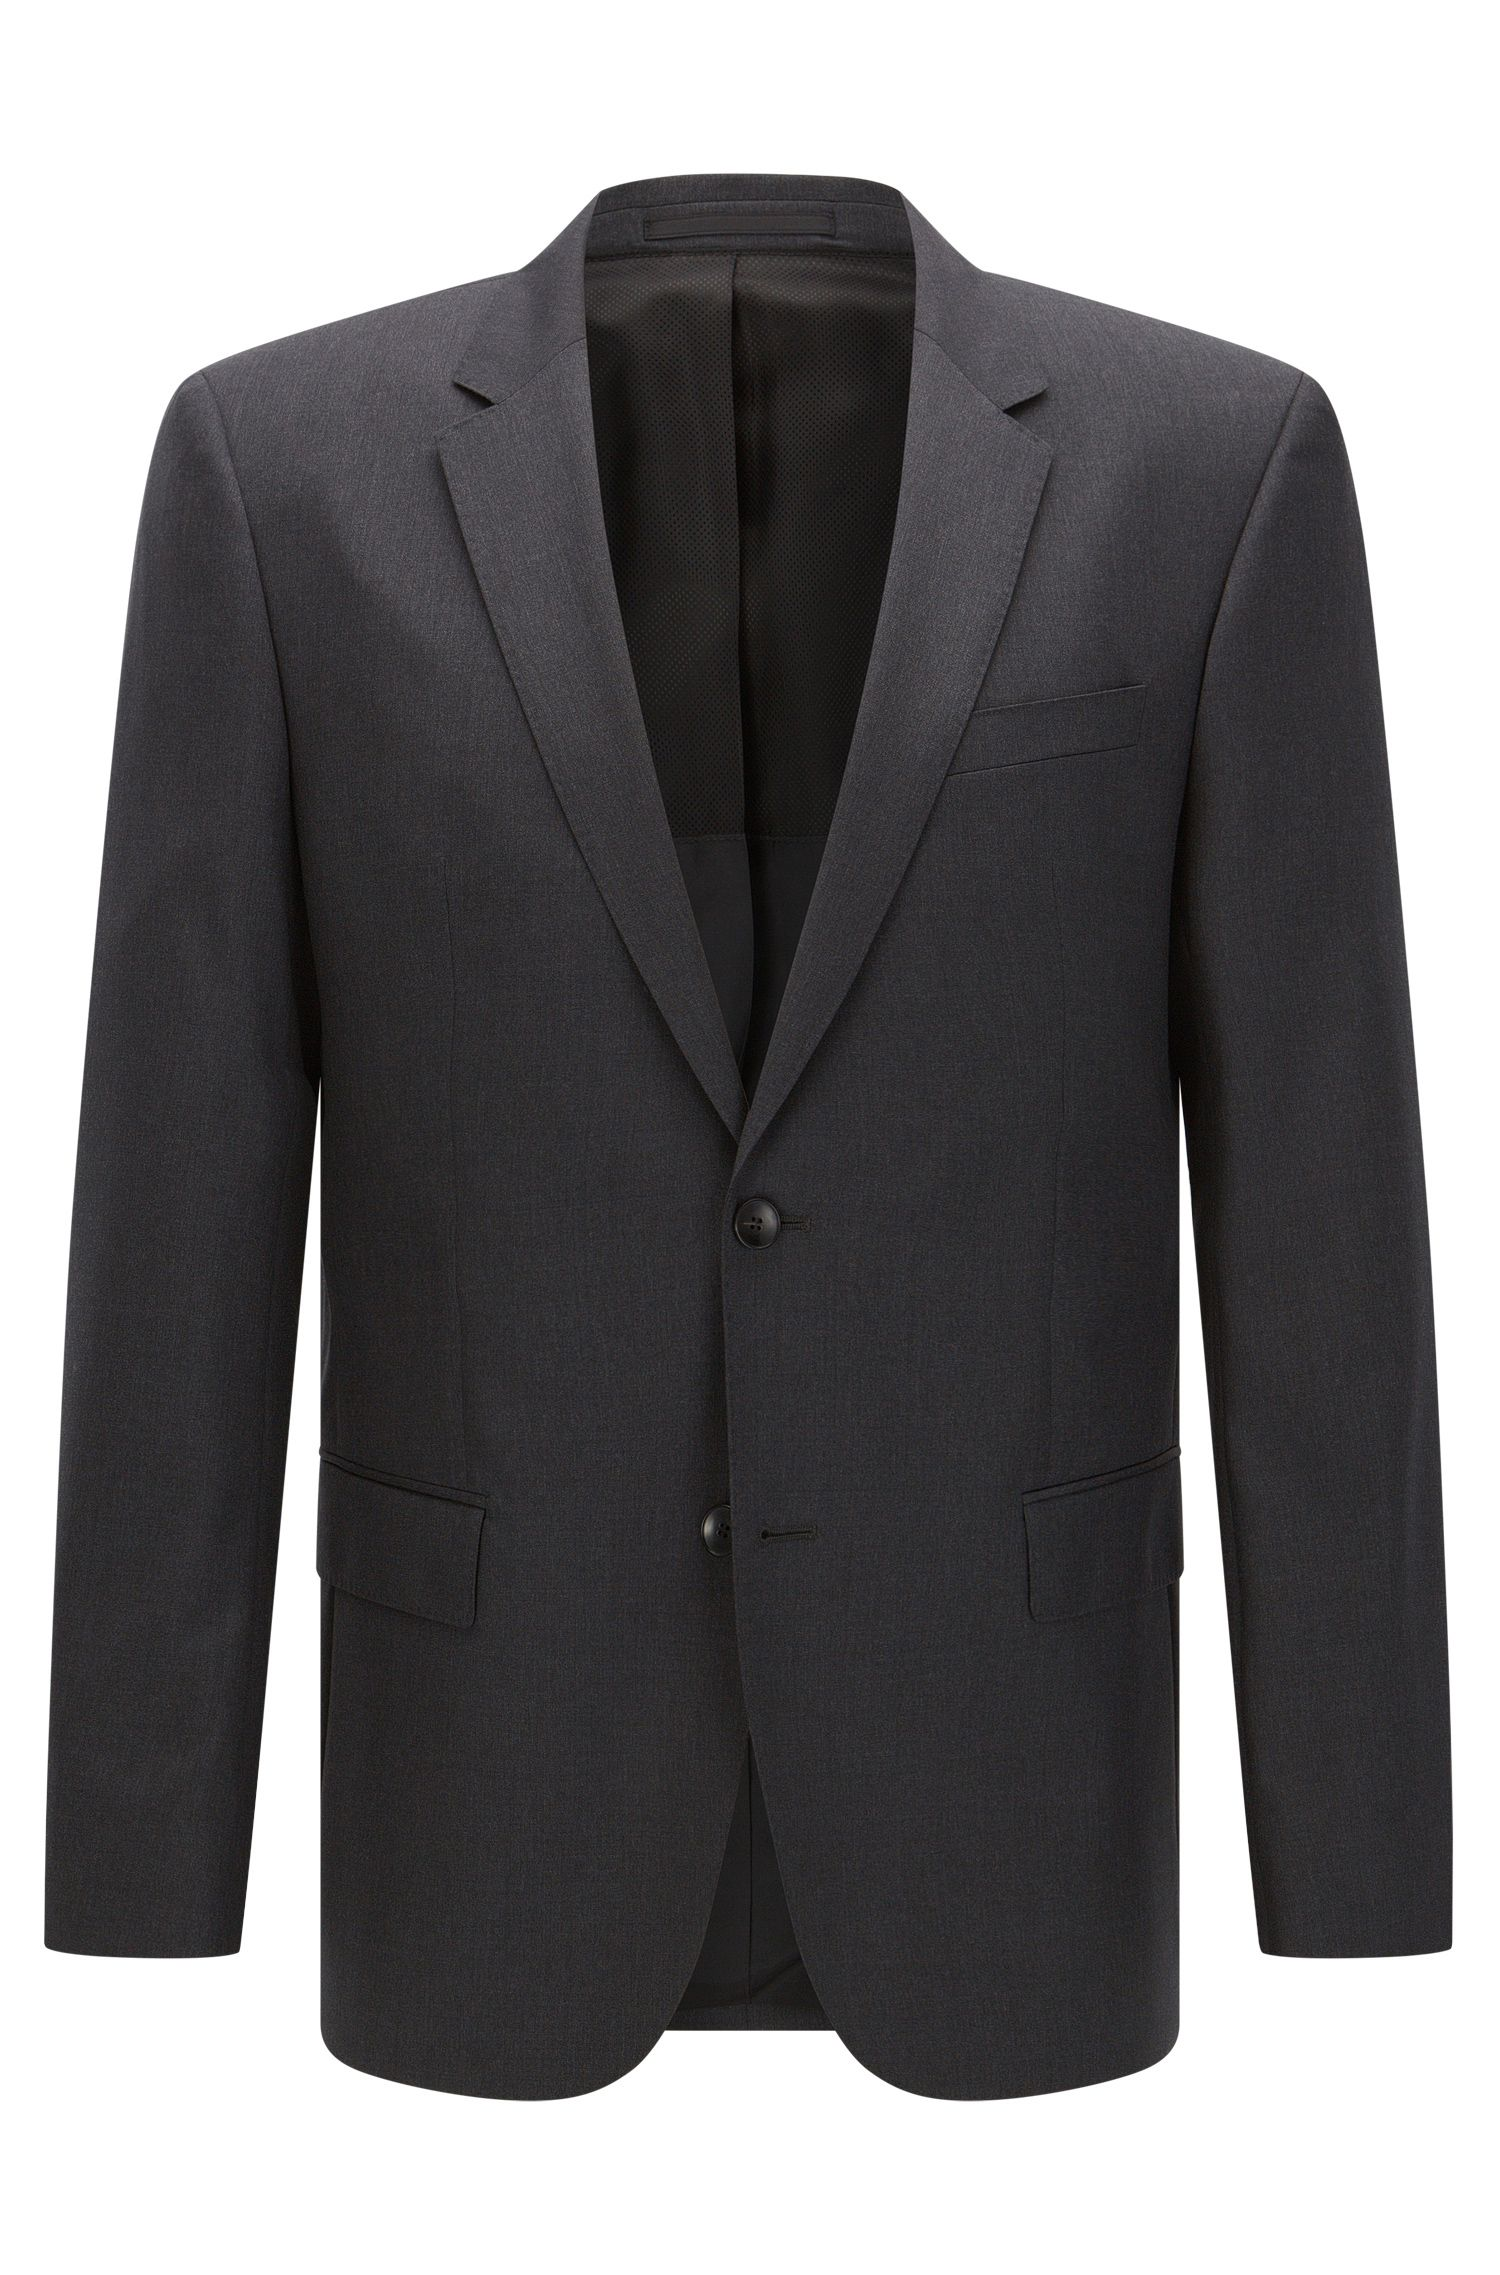 'Hayes Cyl' | Slim Fit, Super 120 Italian Virgin Wool Sport Coat